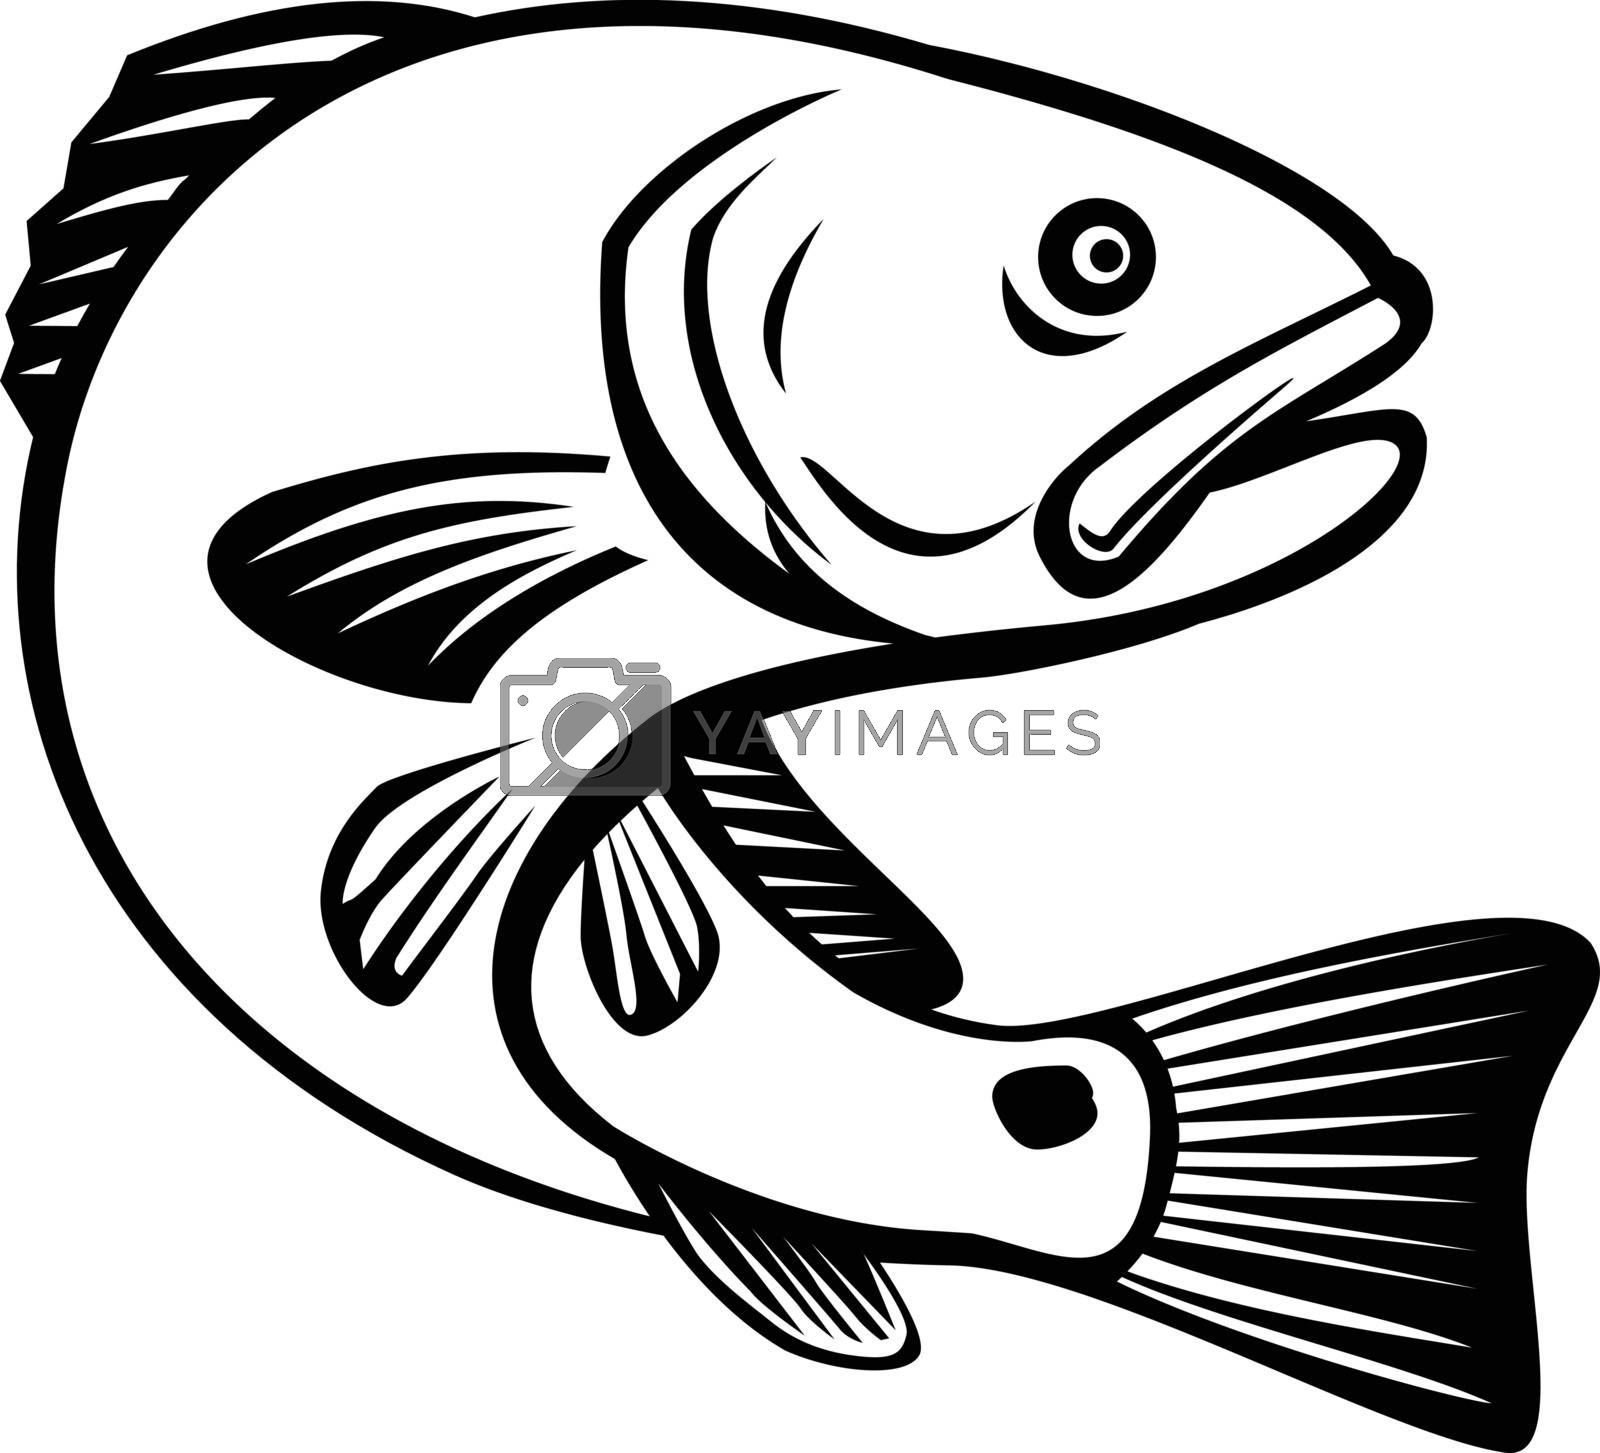 Illustration of a red drum, redfish, channel bass, puppy drum or spottail bass, a game fish found in the Atlantic Ocean from Florida to northern Mexico, jumping up done in black and white retro style.